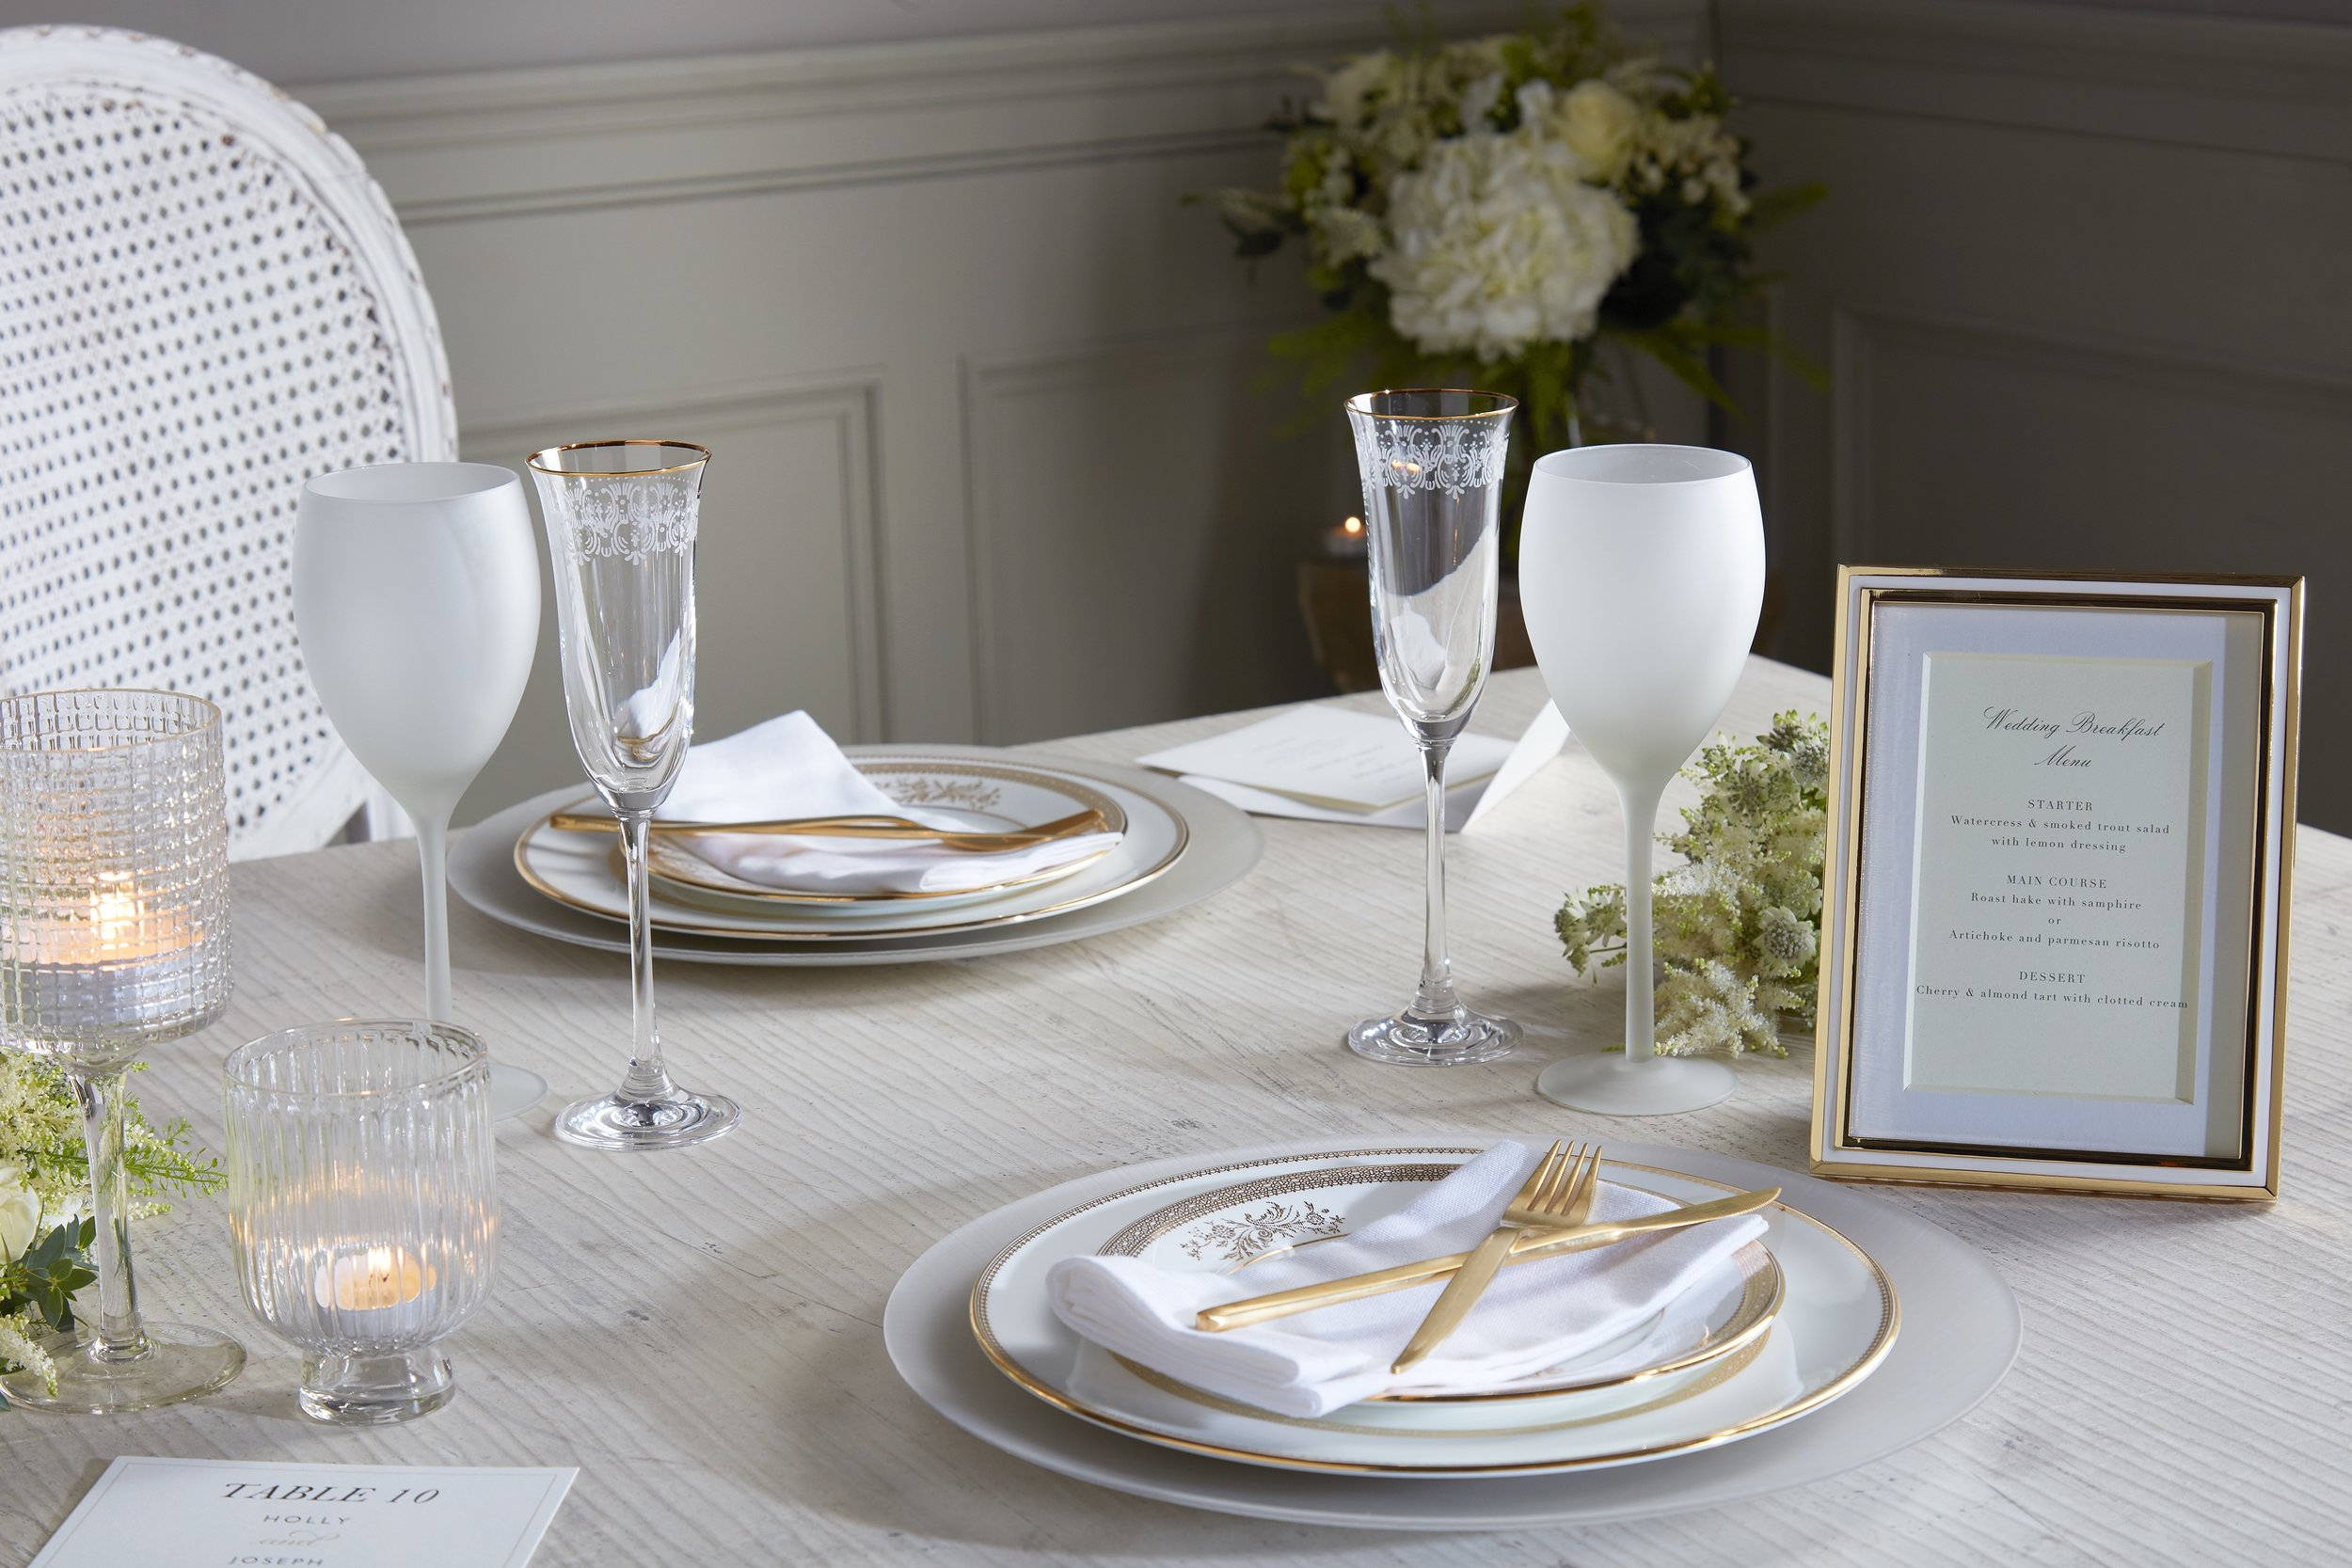 Grey and black table setting v1.jpg